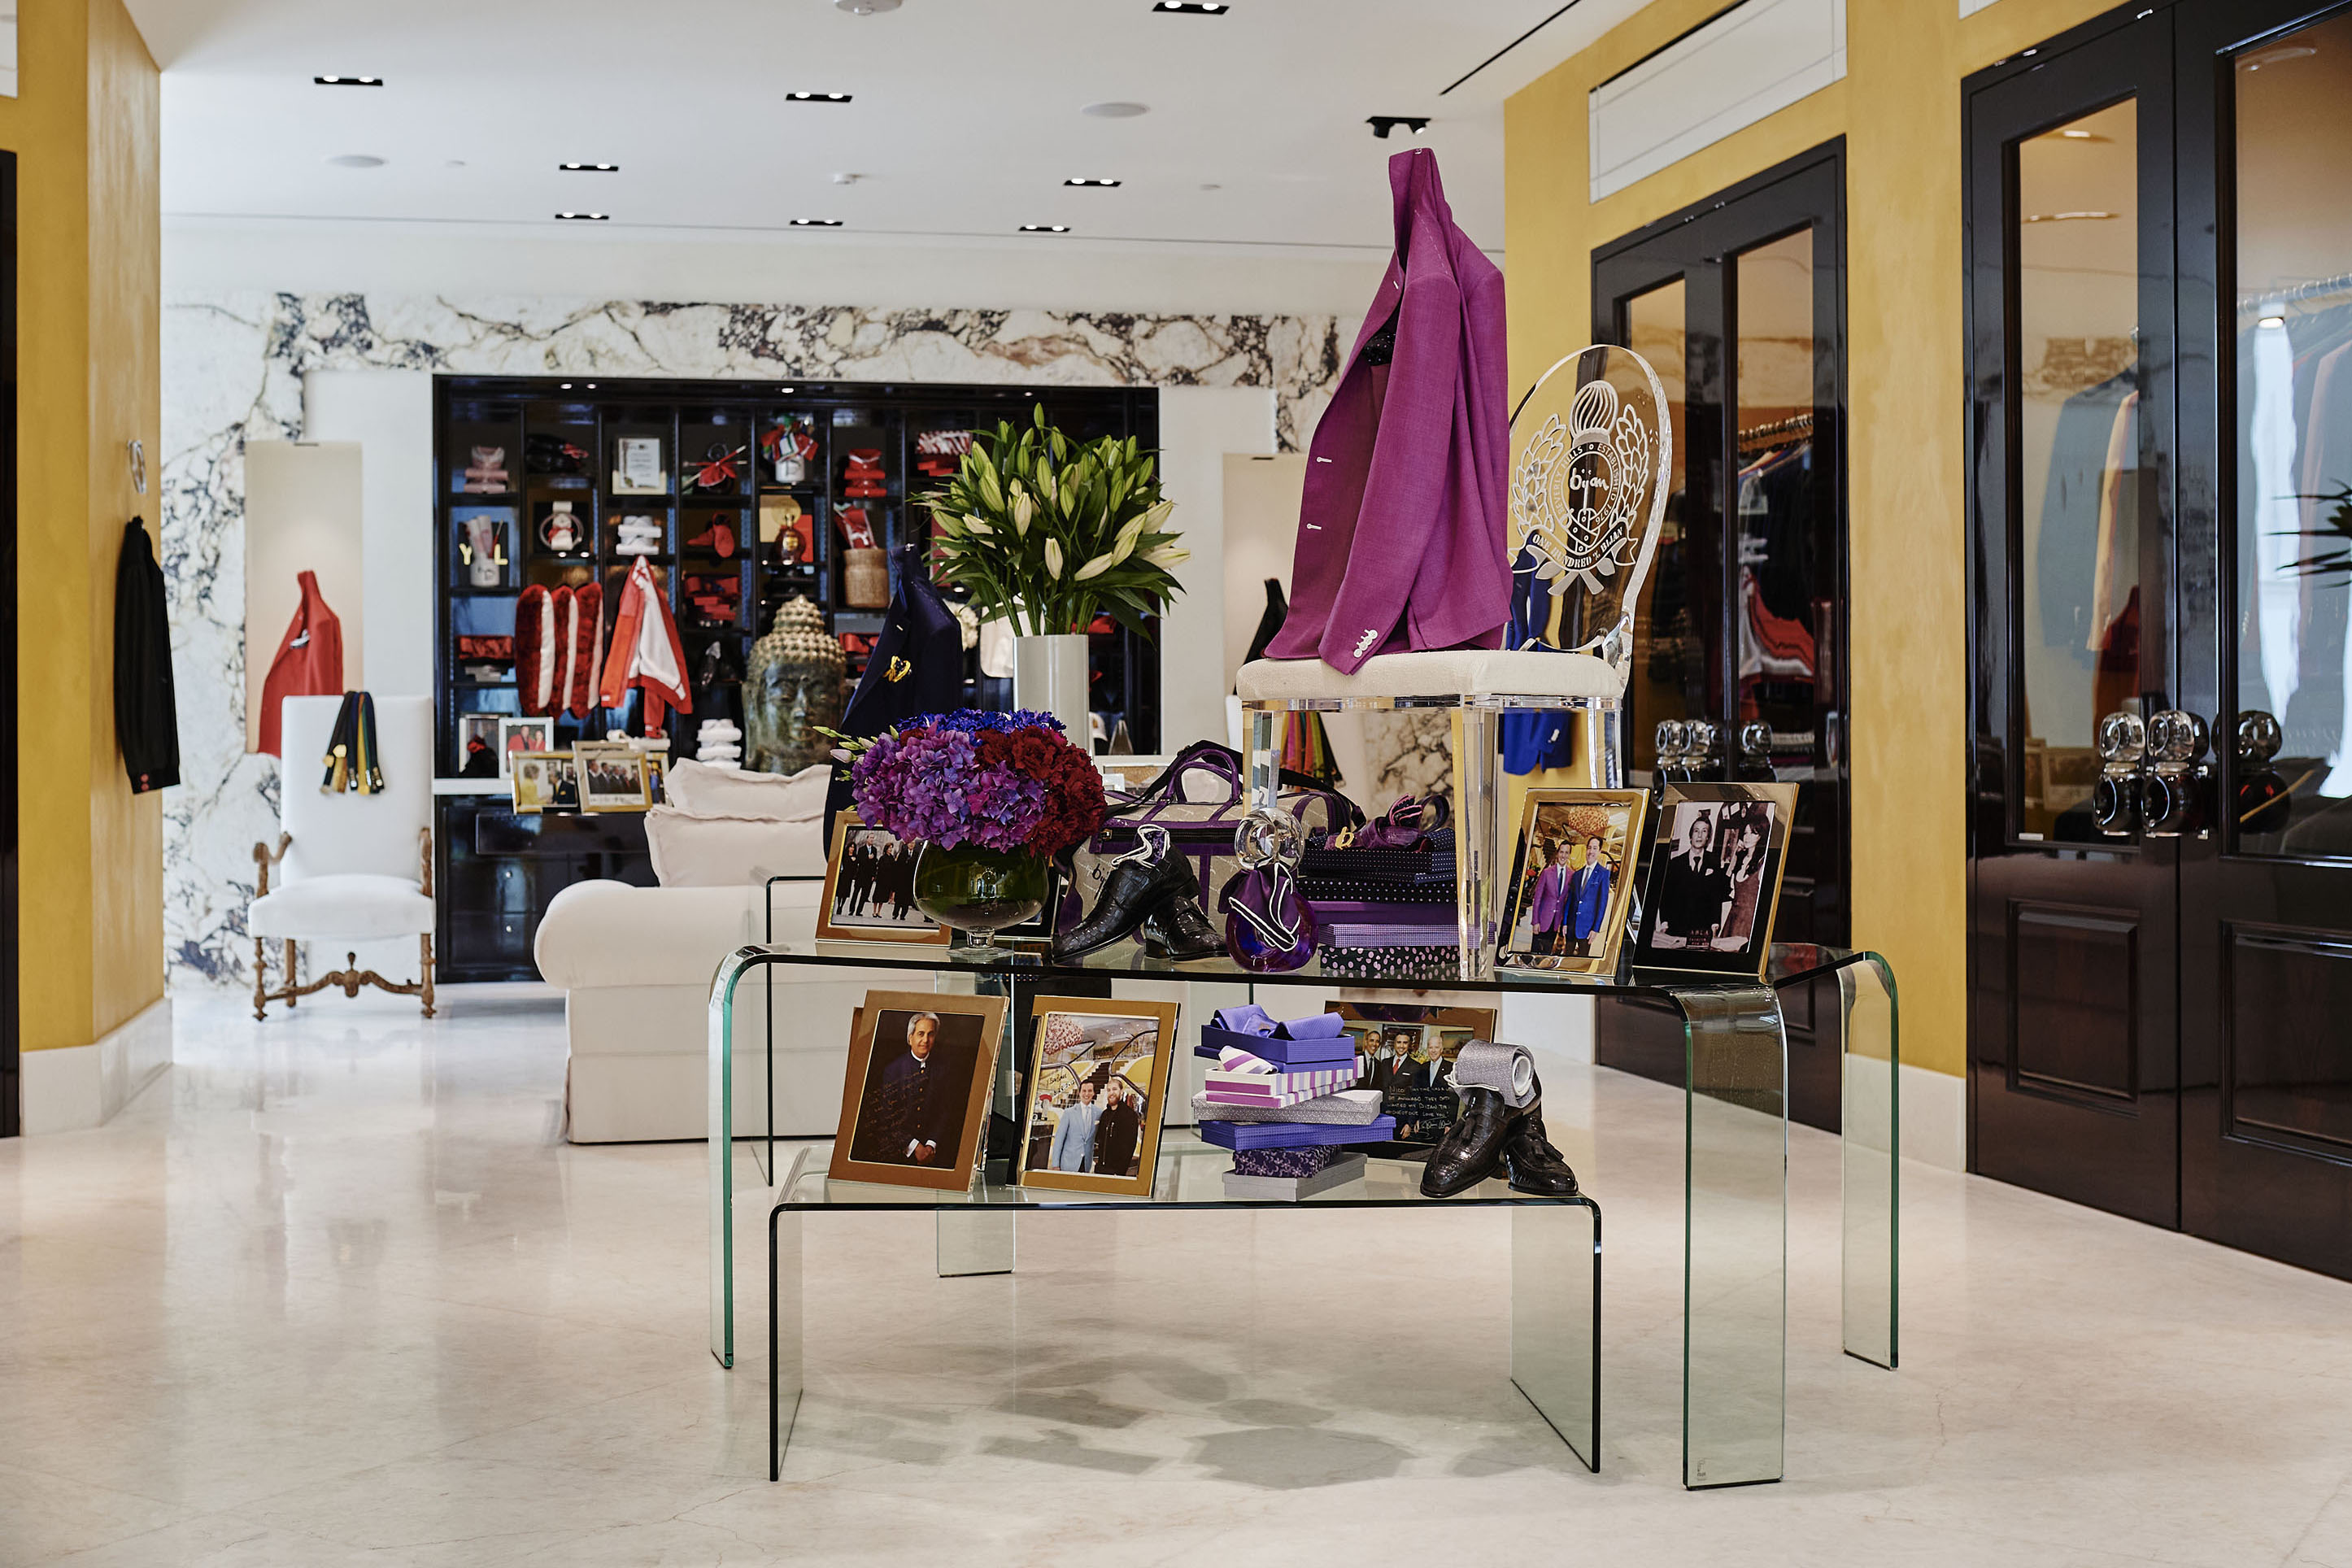 The House of Bijan store on Rodeo Drive.